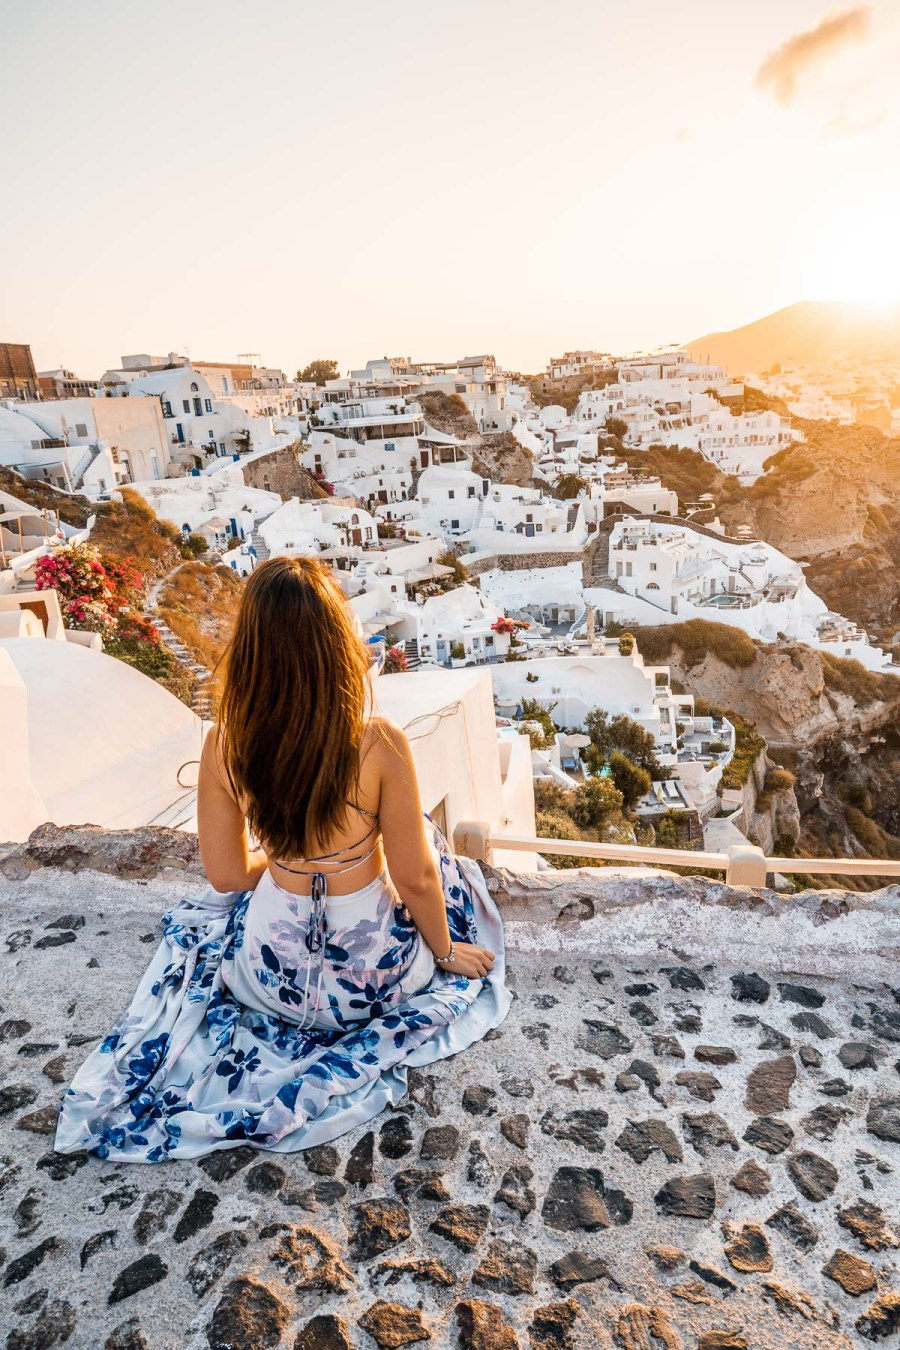 Girl in a blue floral dress sitting on a stone pathway, watching the sunrise in Oia, Santorini